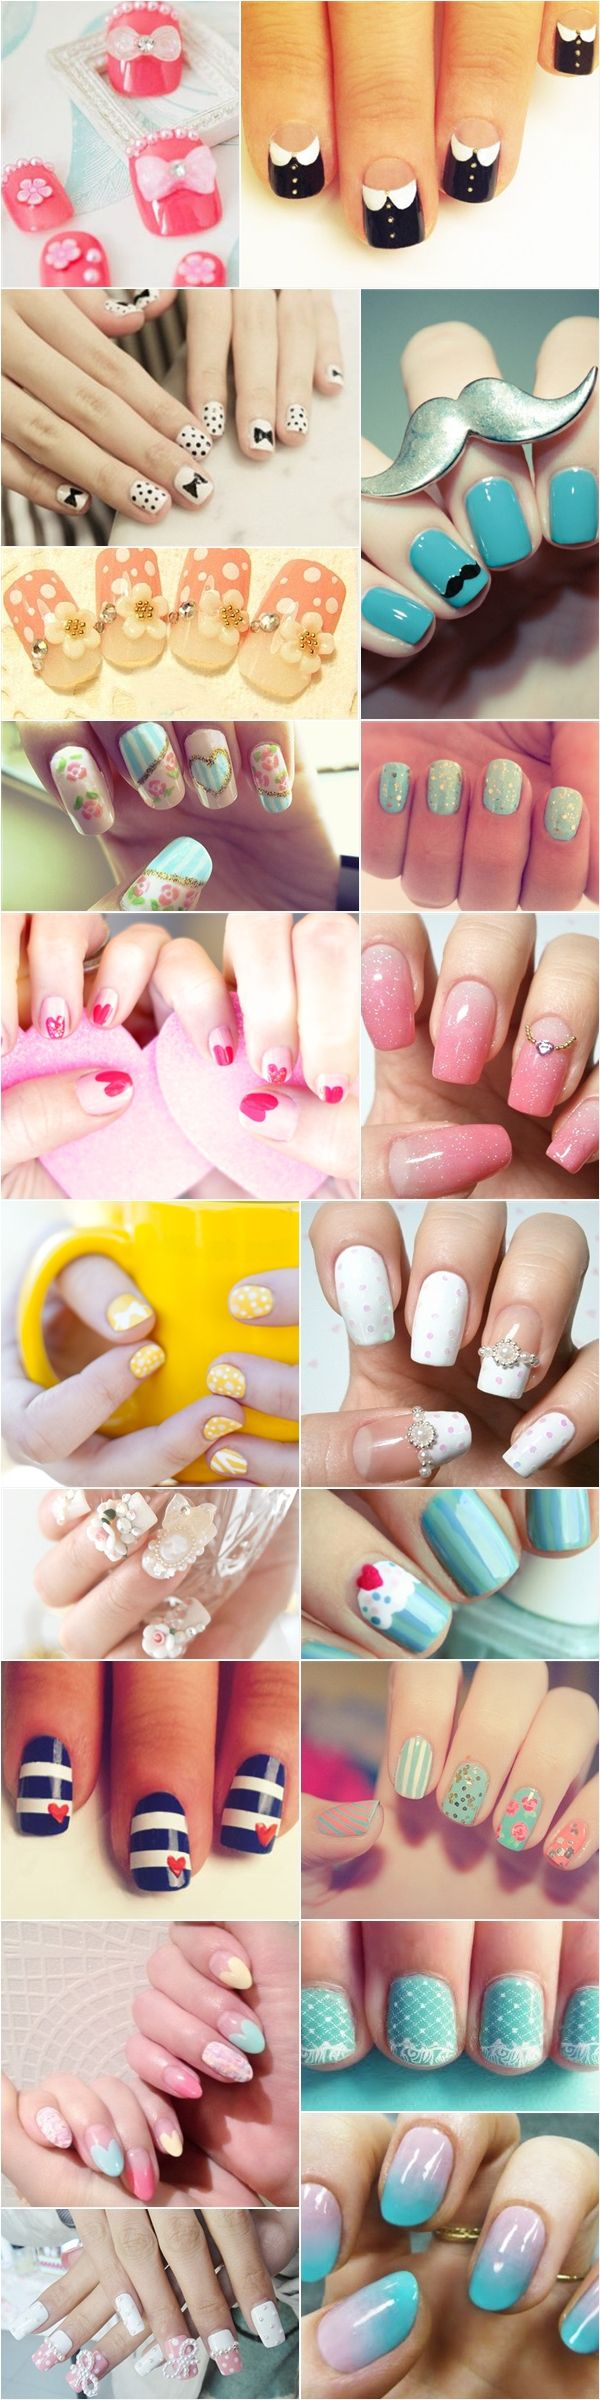 Lovely nail designs for brides    #wedding #nails #manicure I like the hello ones @Itzel R